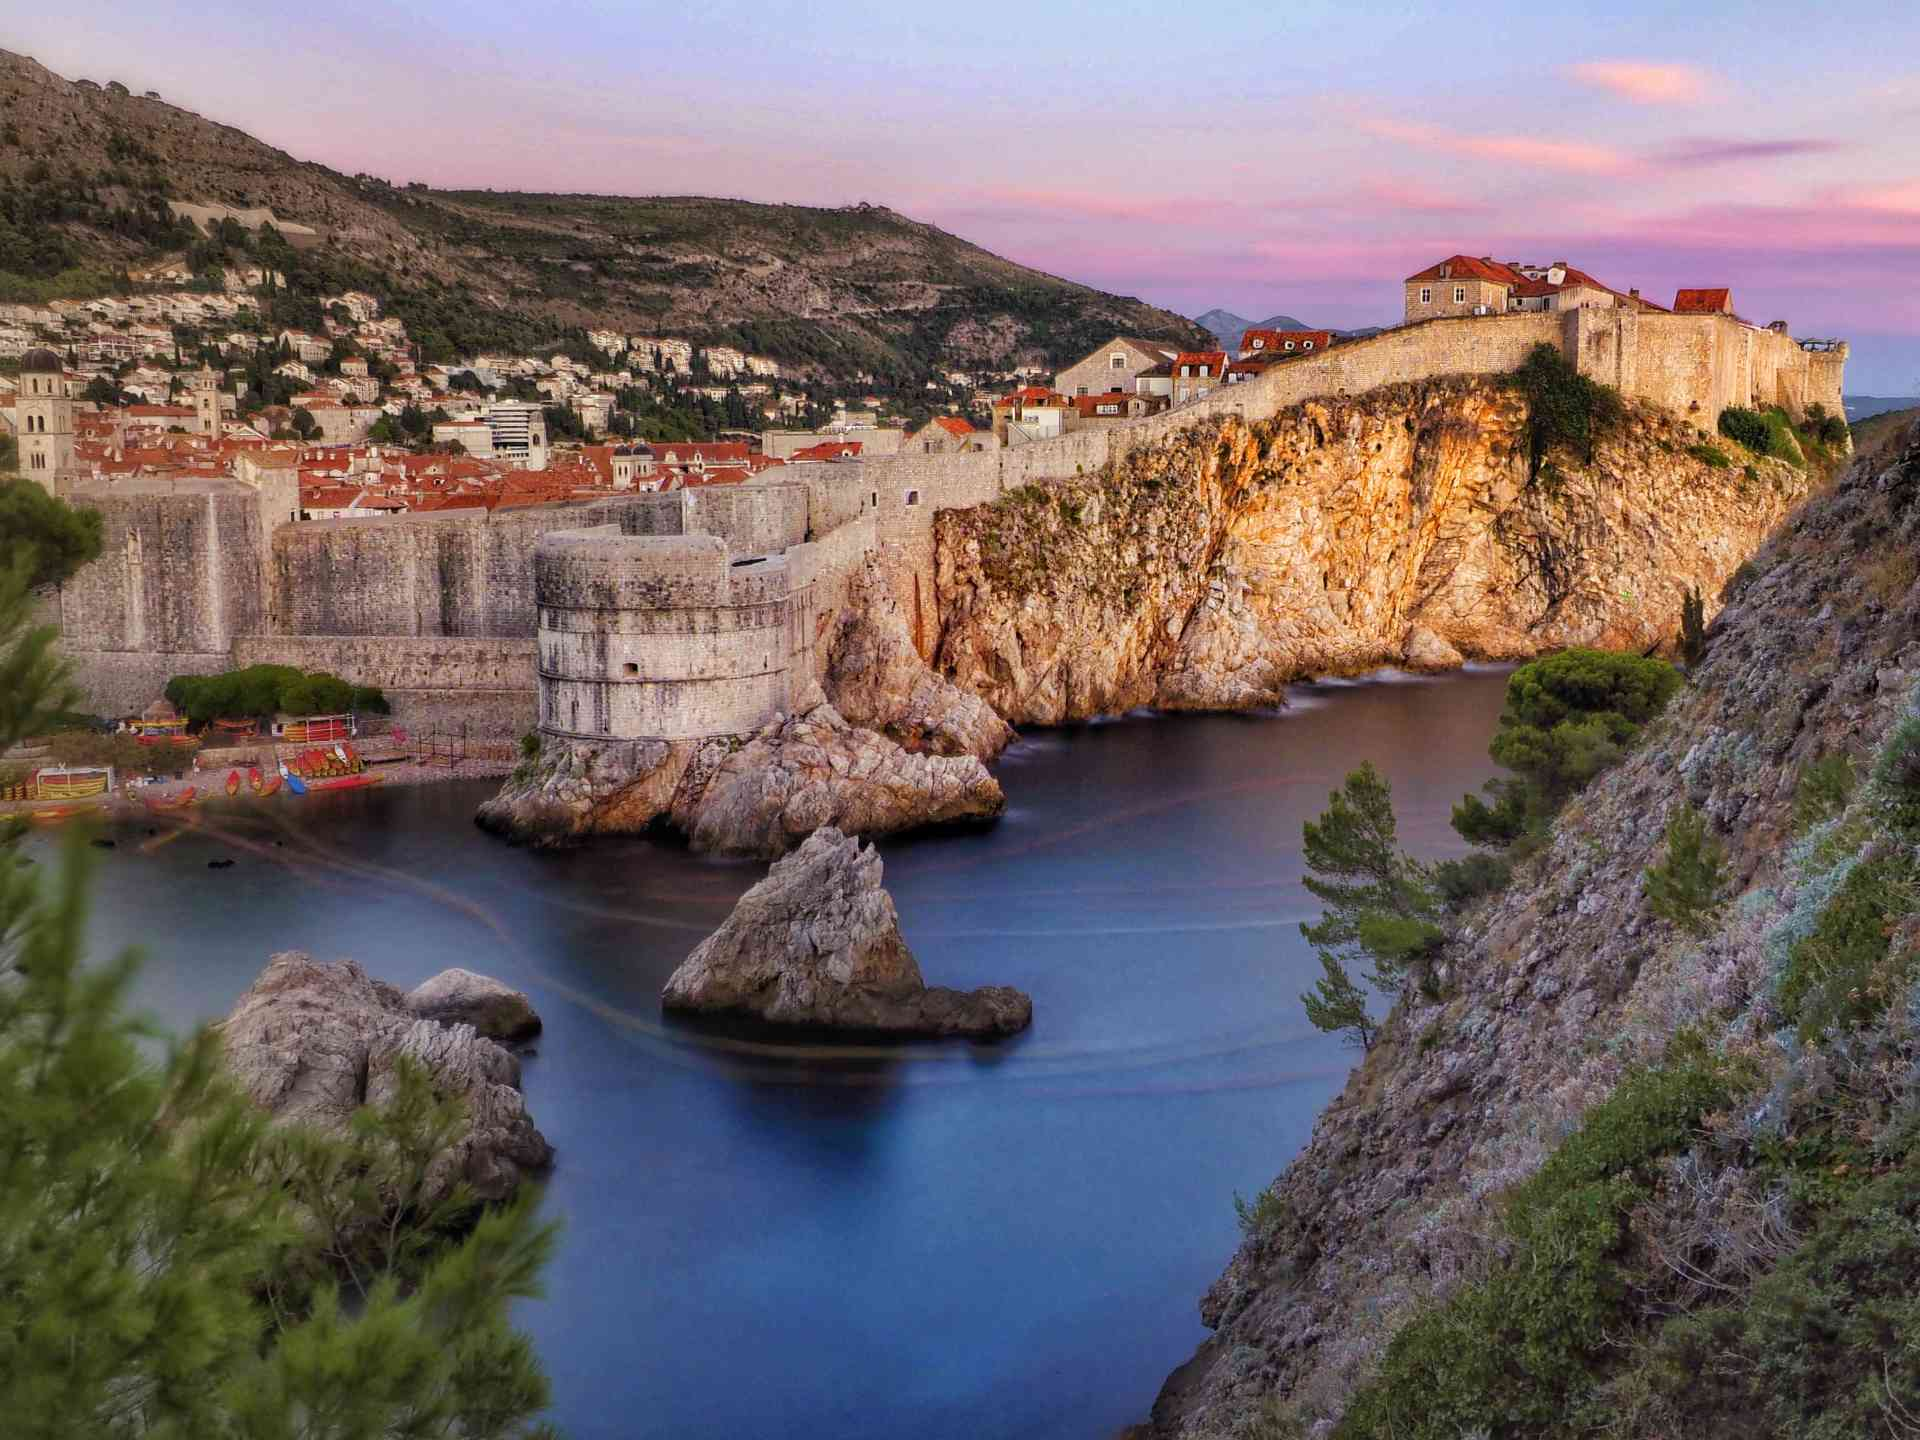 Dubrovnik, Croatia by David Hein